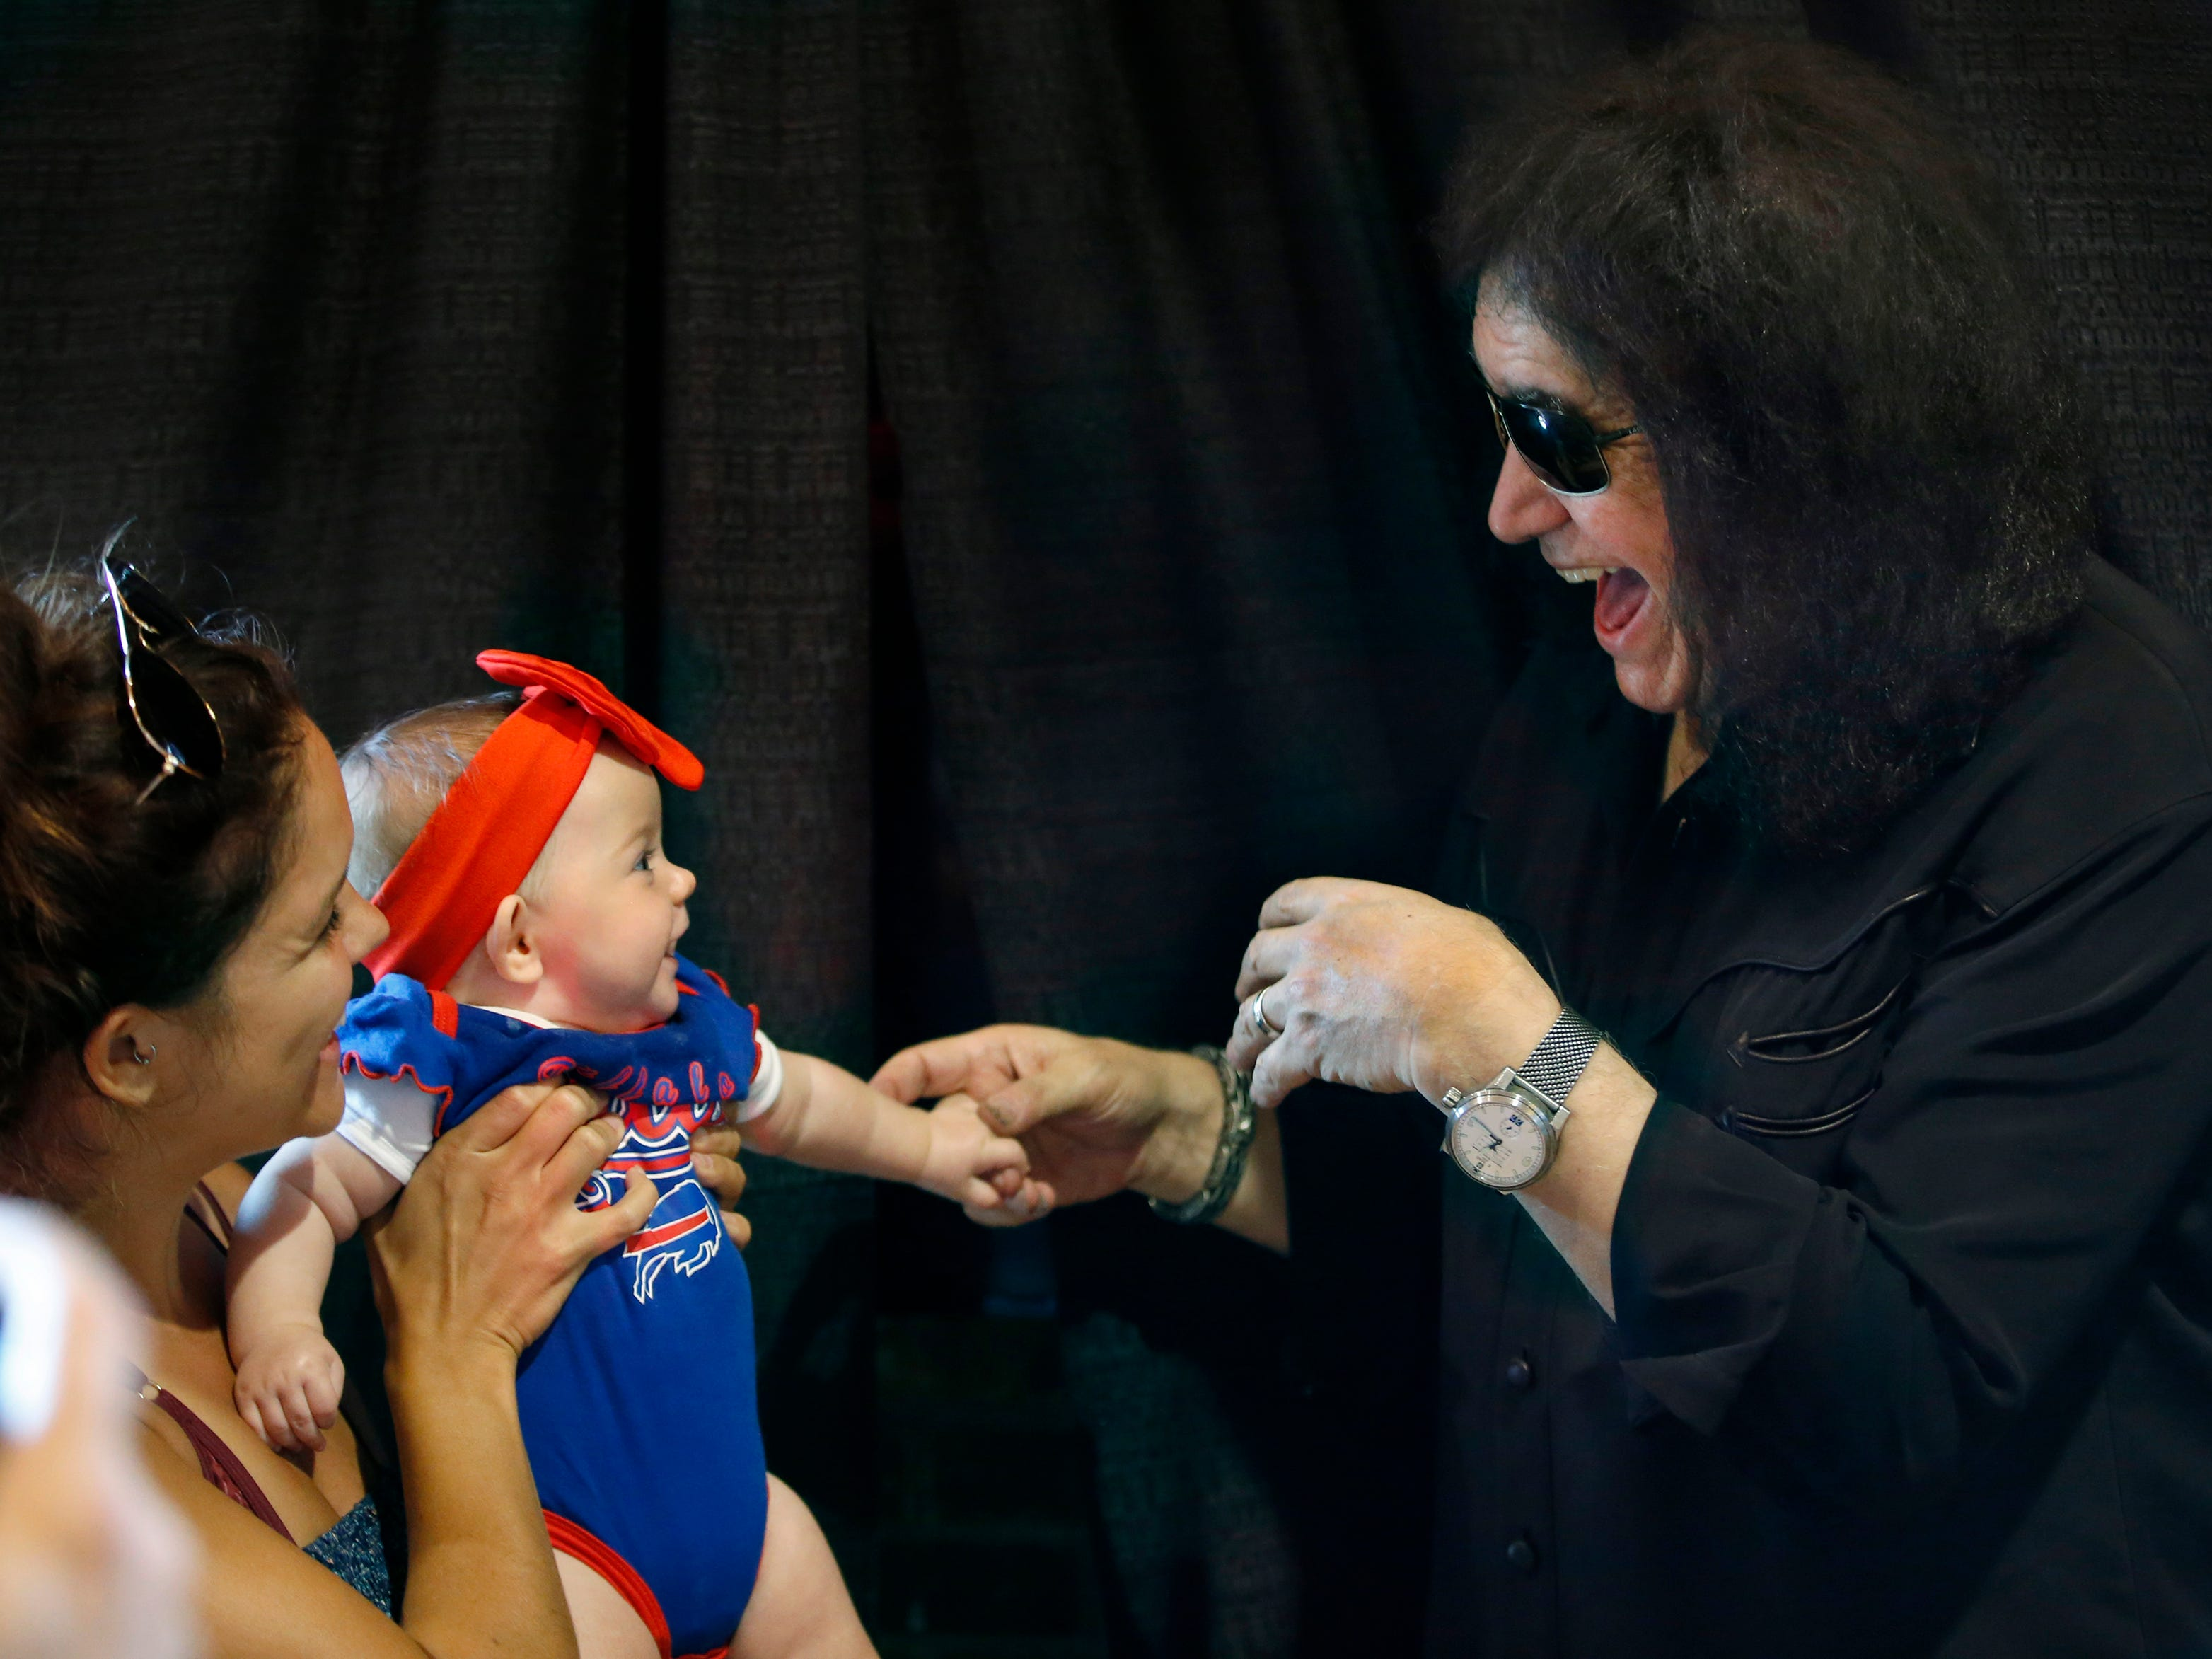 KISS co-founder Gene Simmons makes faces for five-month-old Layla Sager of Rochester who held by her mother Kirsten smiles back at him, during his appearance at the Chili-Paul Wegmans store to promote his MoneyBag Sodas.